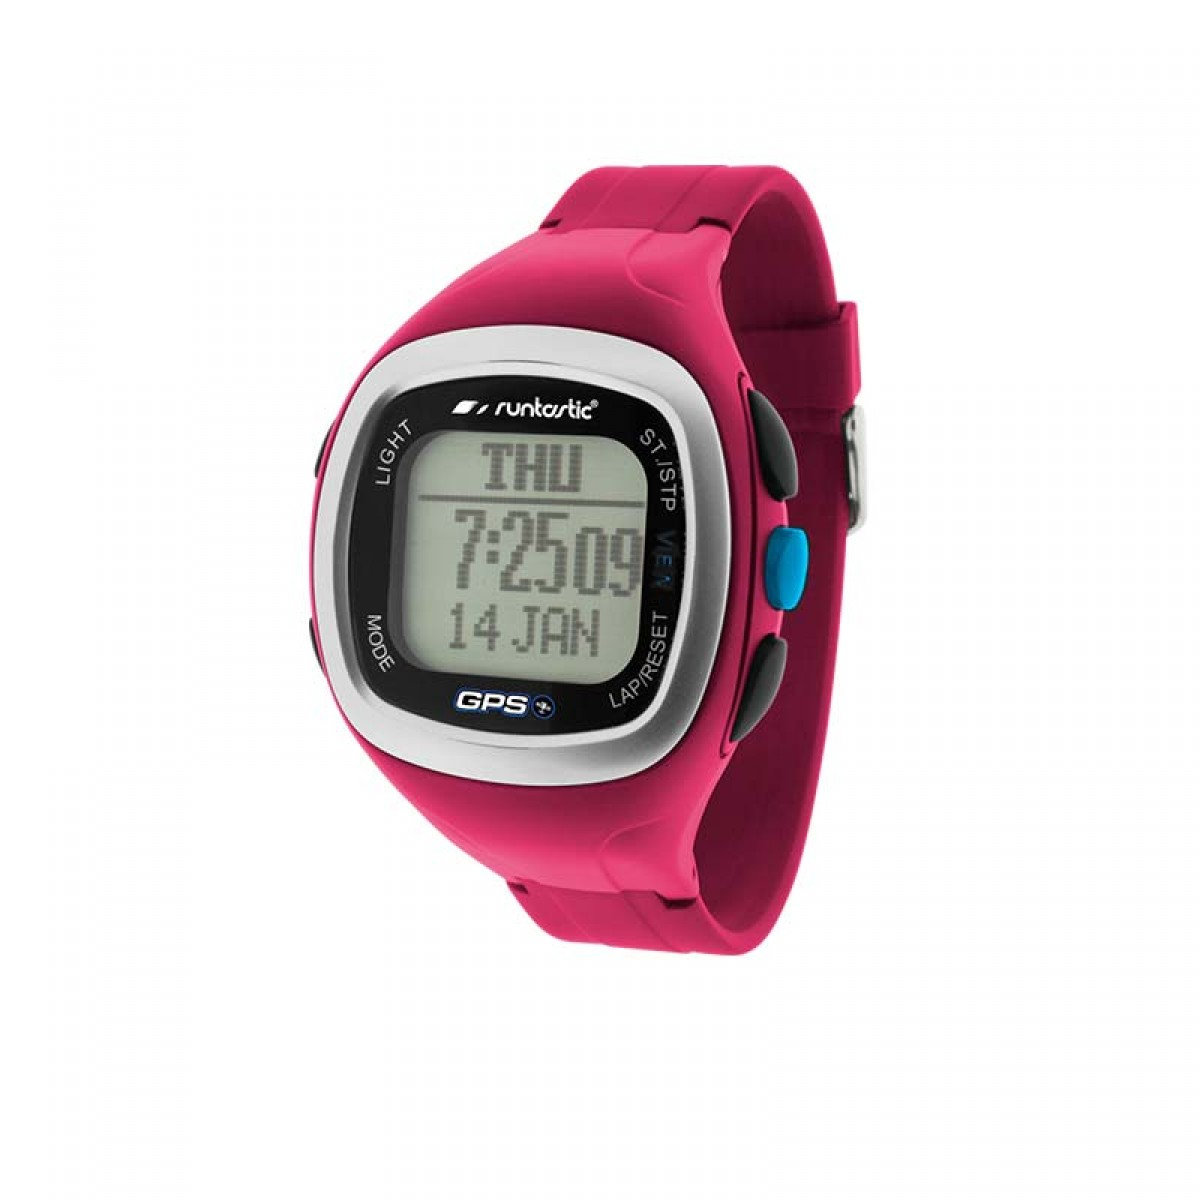 Wearable Steps Distance Activity Burned Calories Sleep Analysis Pulse (HR) Runtastic GPS Watch and Heart Rate Monitor